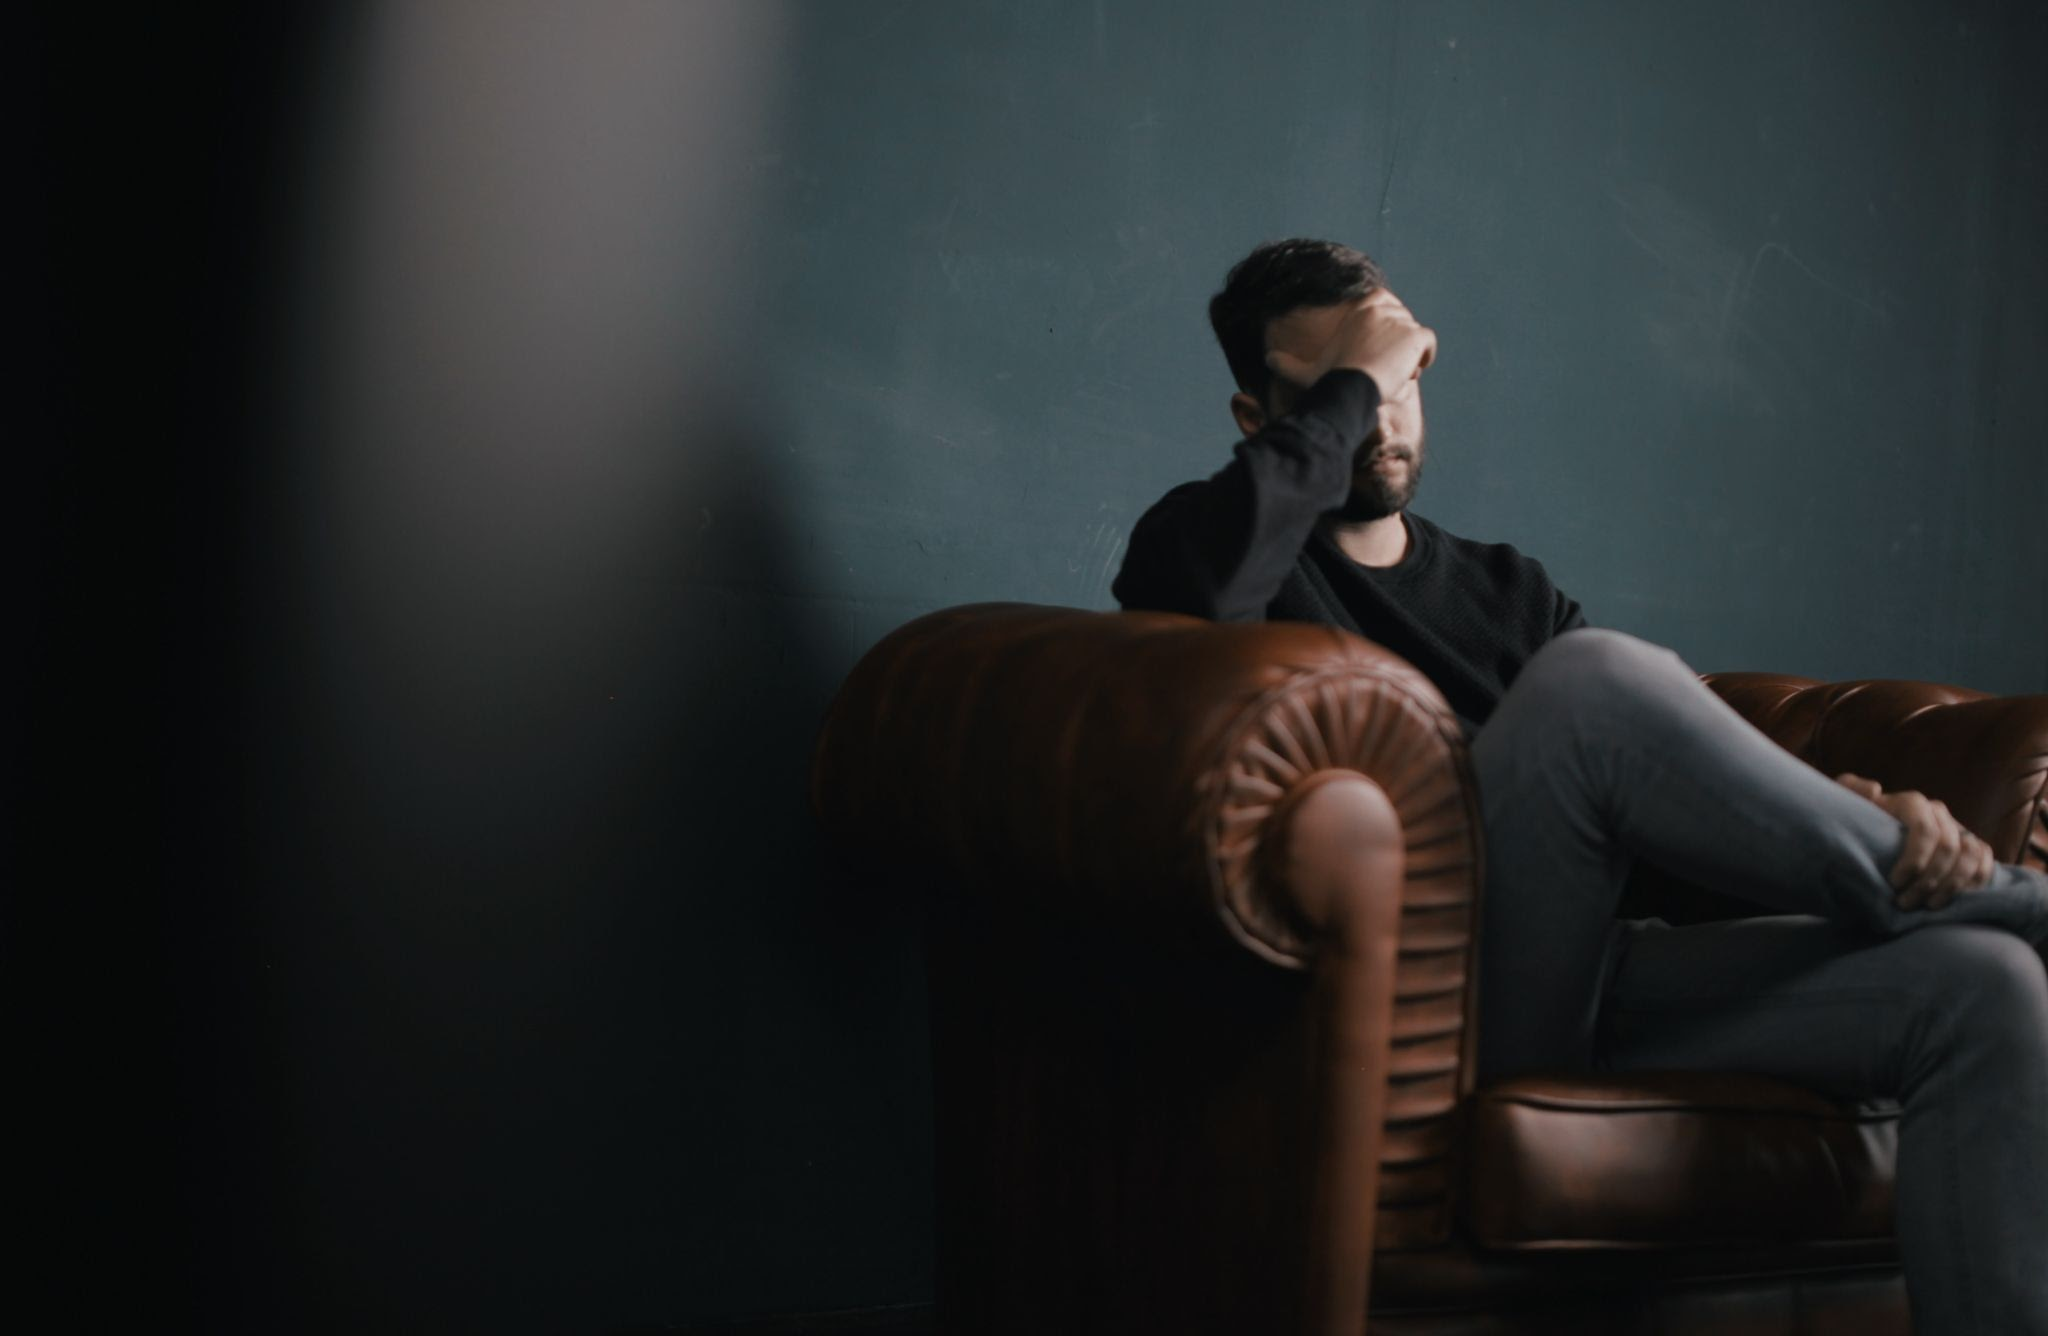 how does social media affect mental health - Appearance